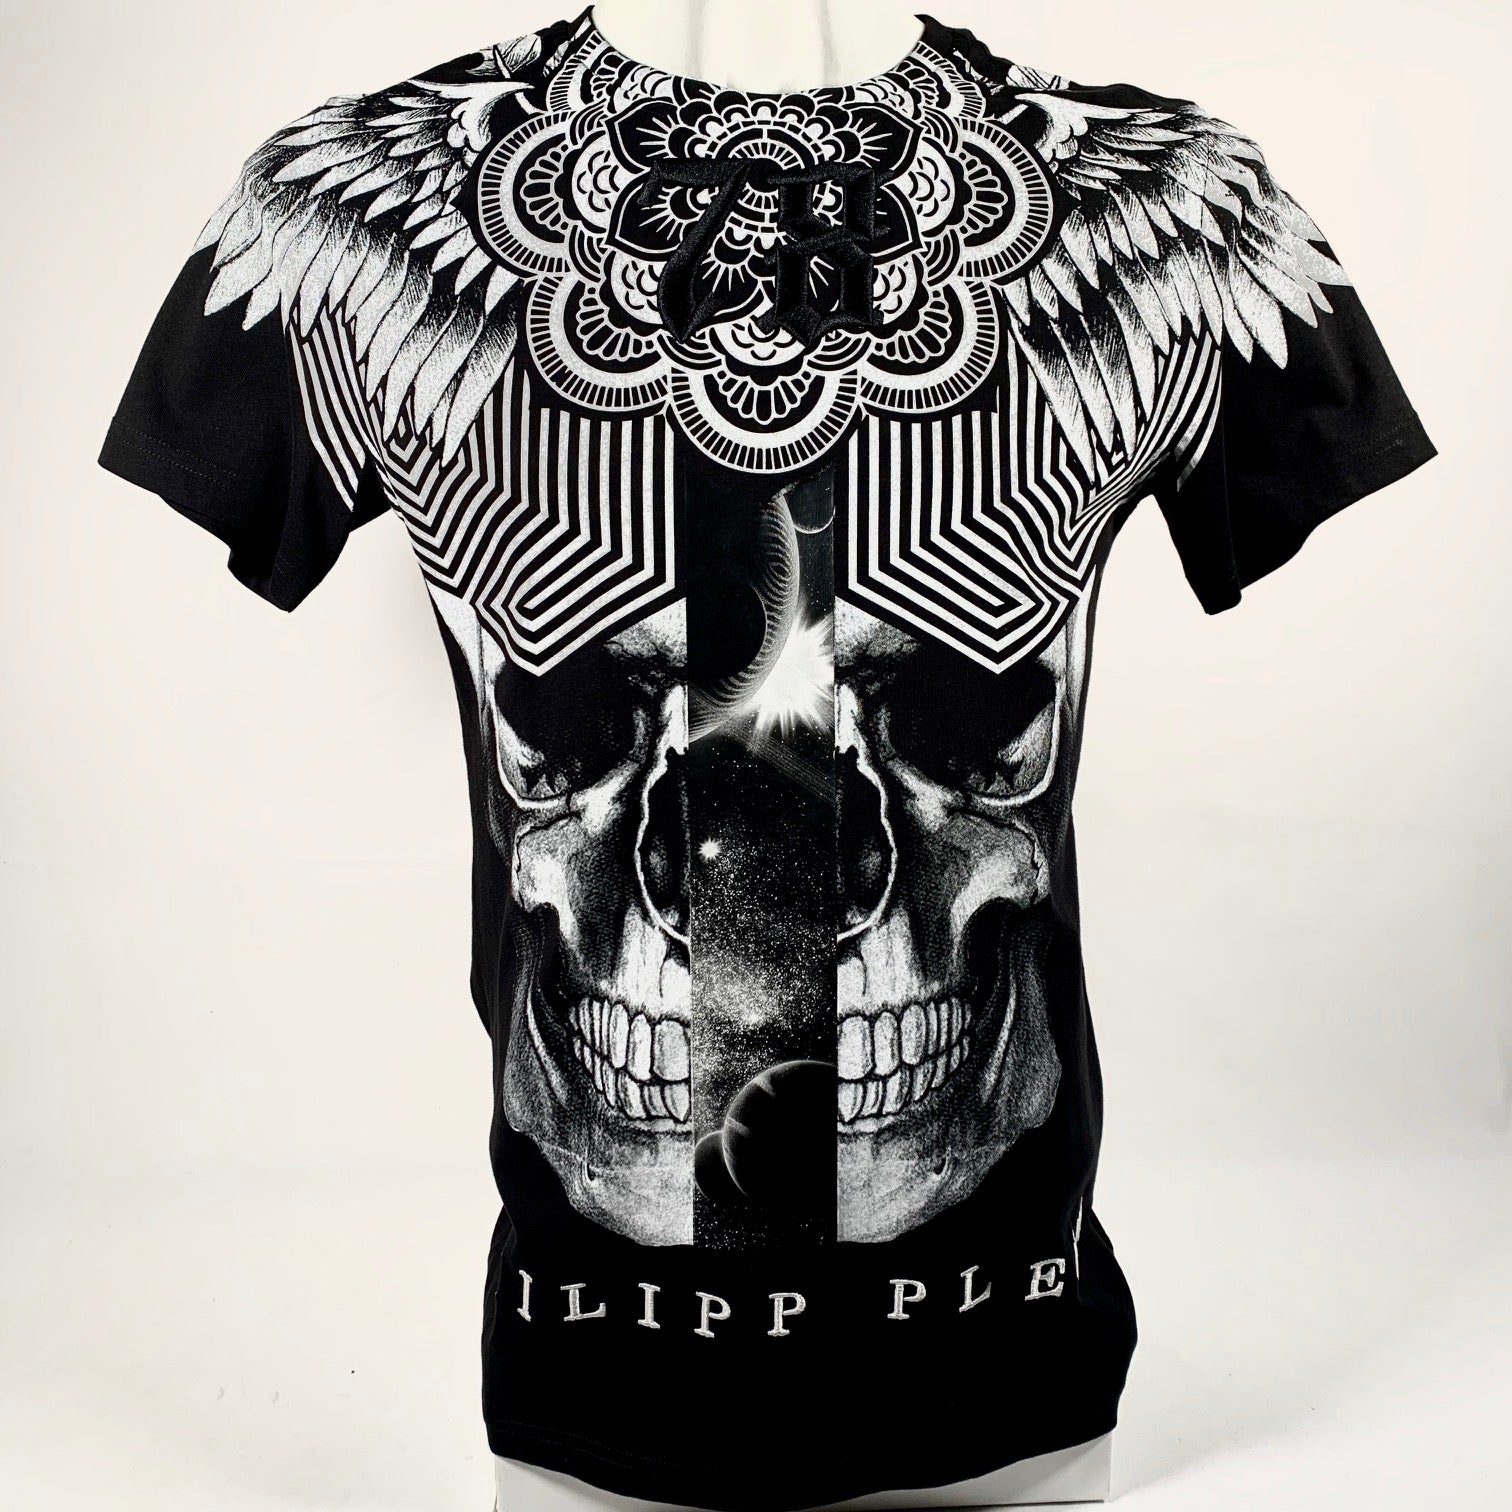 Philipp Plein, T-shirt stampa teschio + patch ricami, M